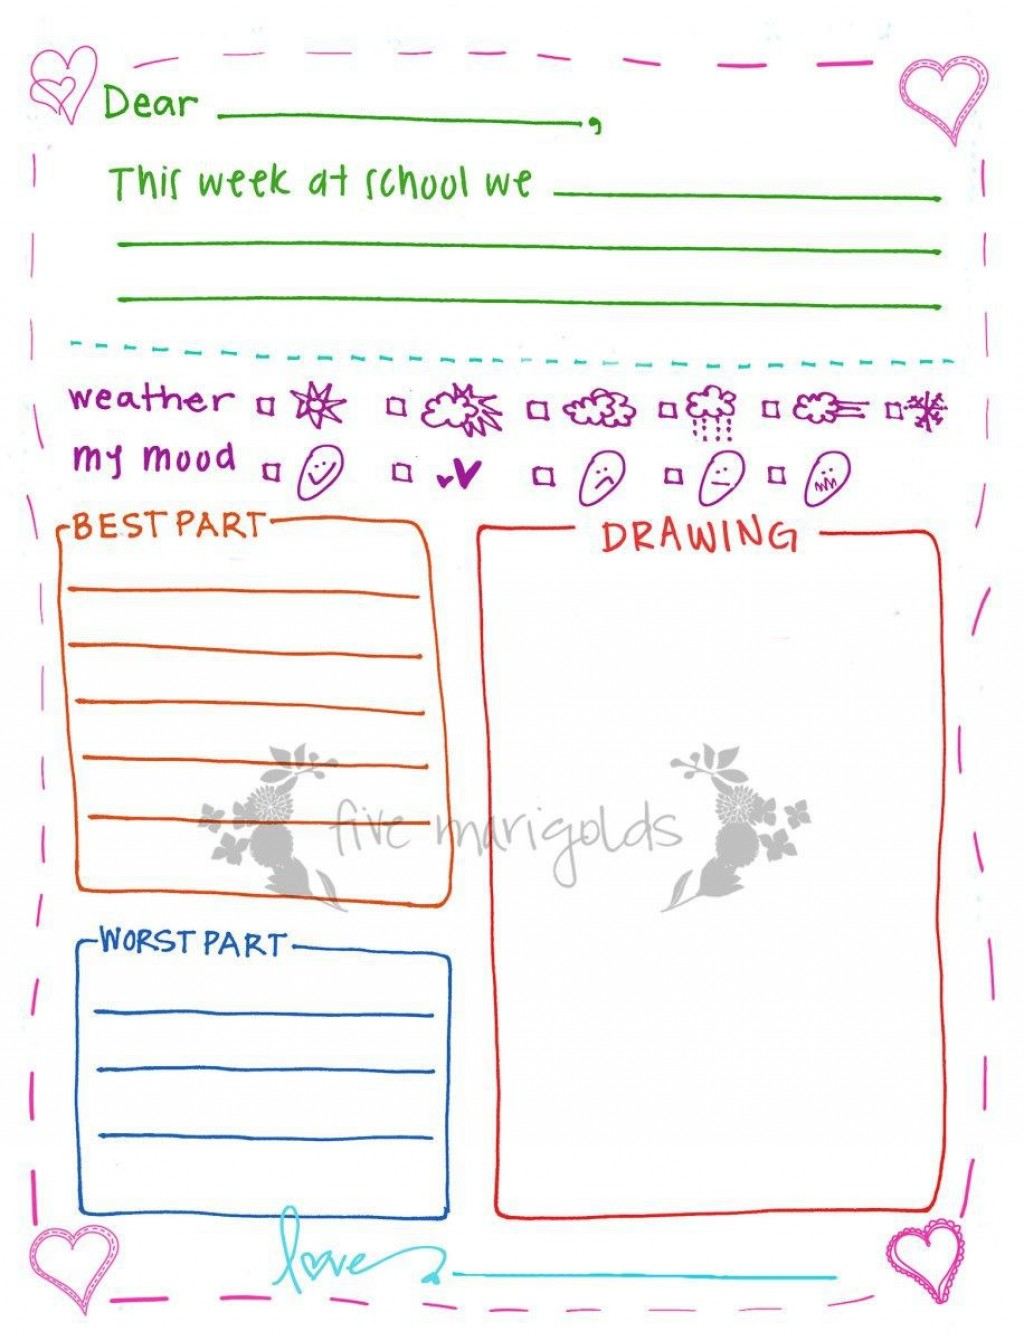 002 Incredible Free Letter Writing Template For Student Inspiration  StudentsLarge